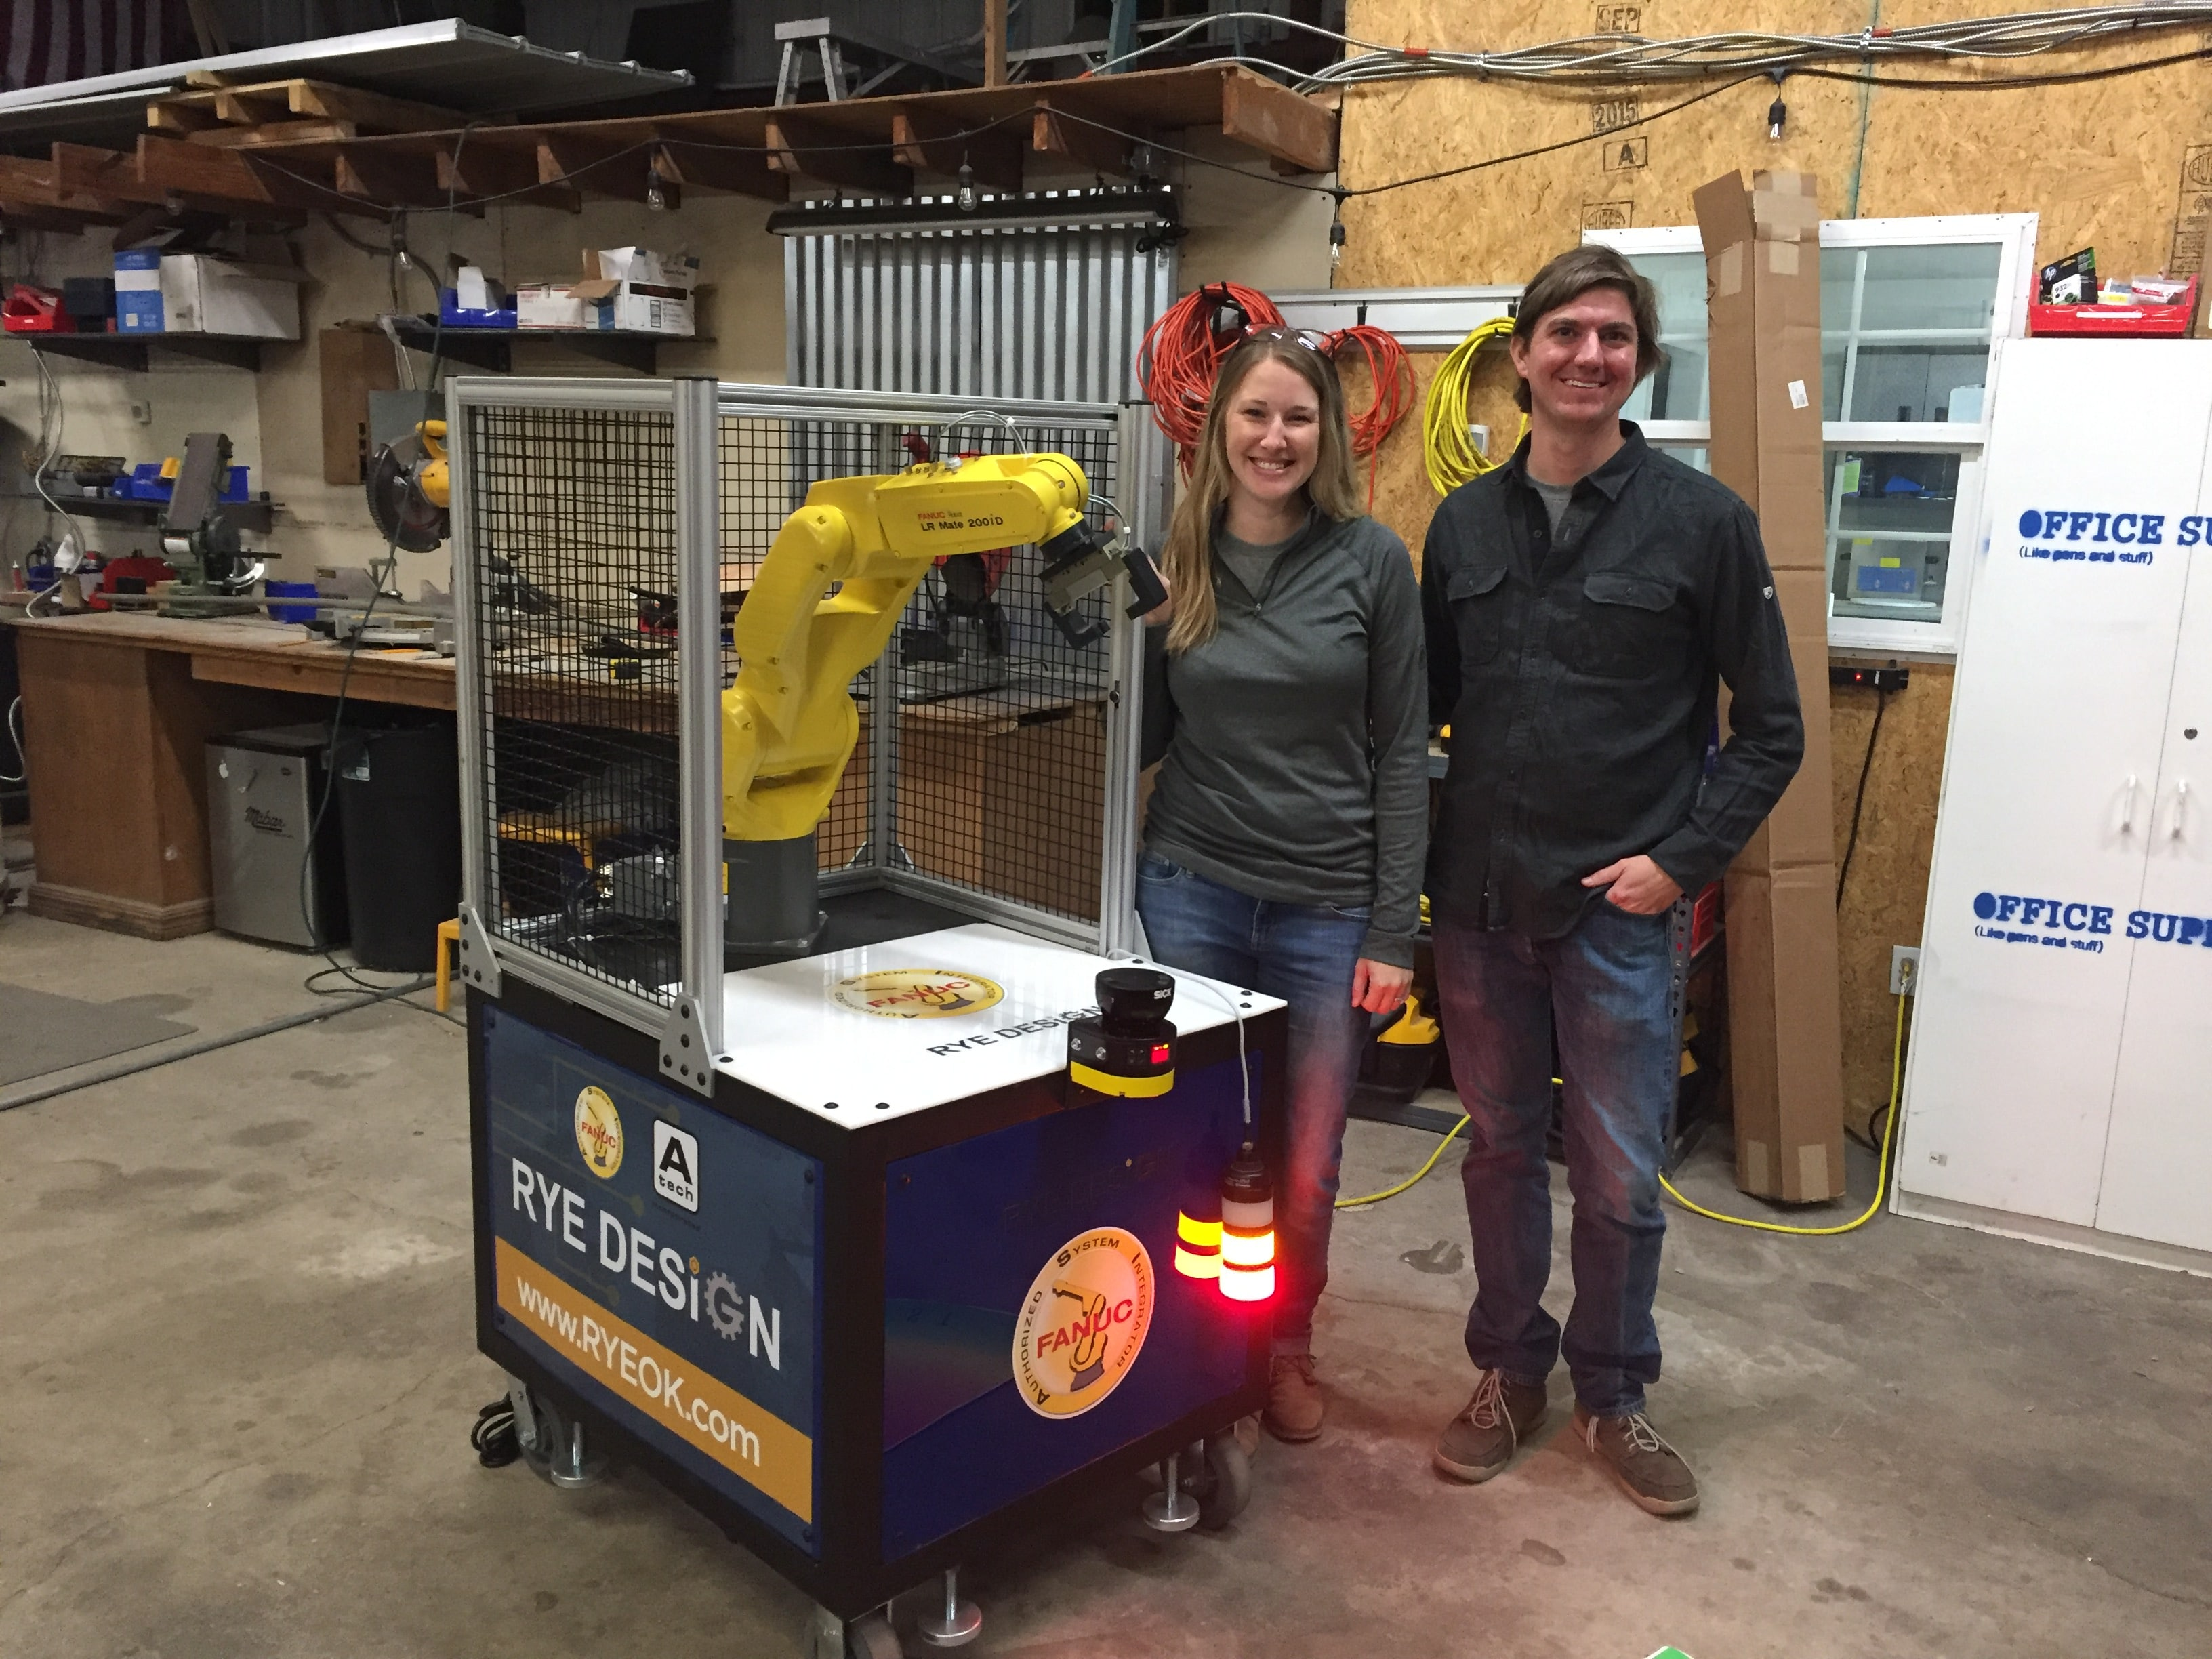 Rye Design in Claremore: One Robot at a Time – More Claremore